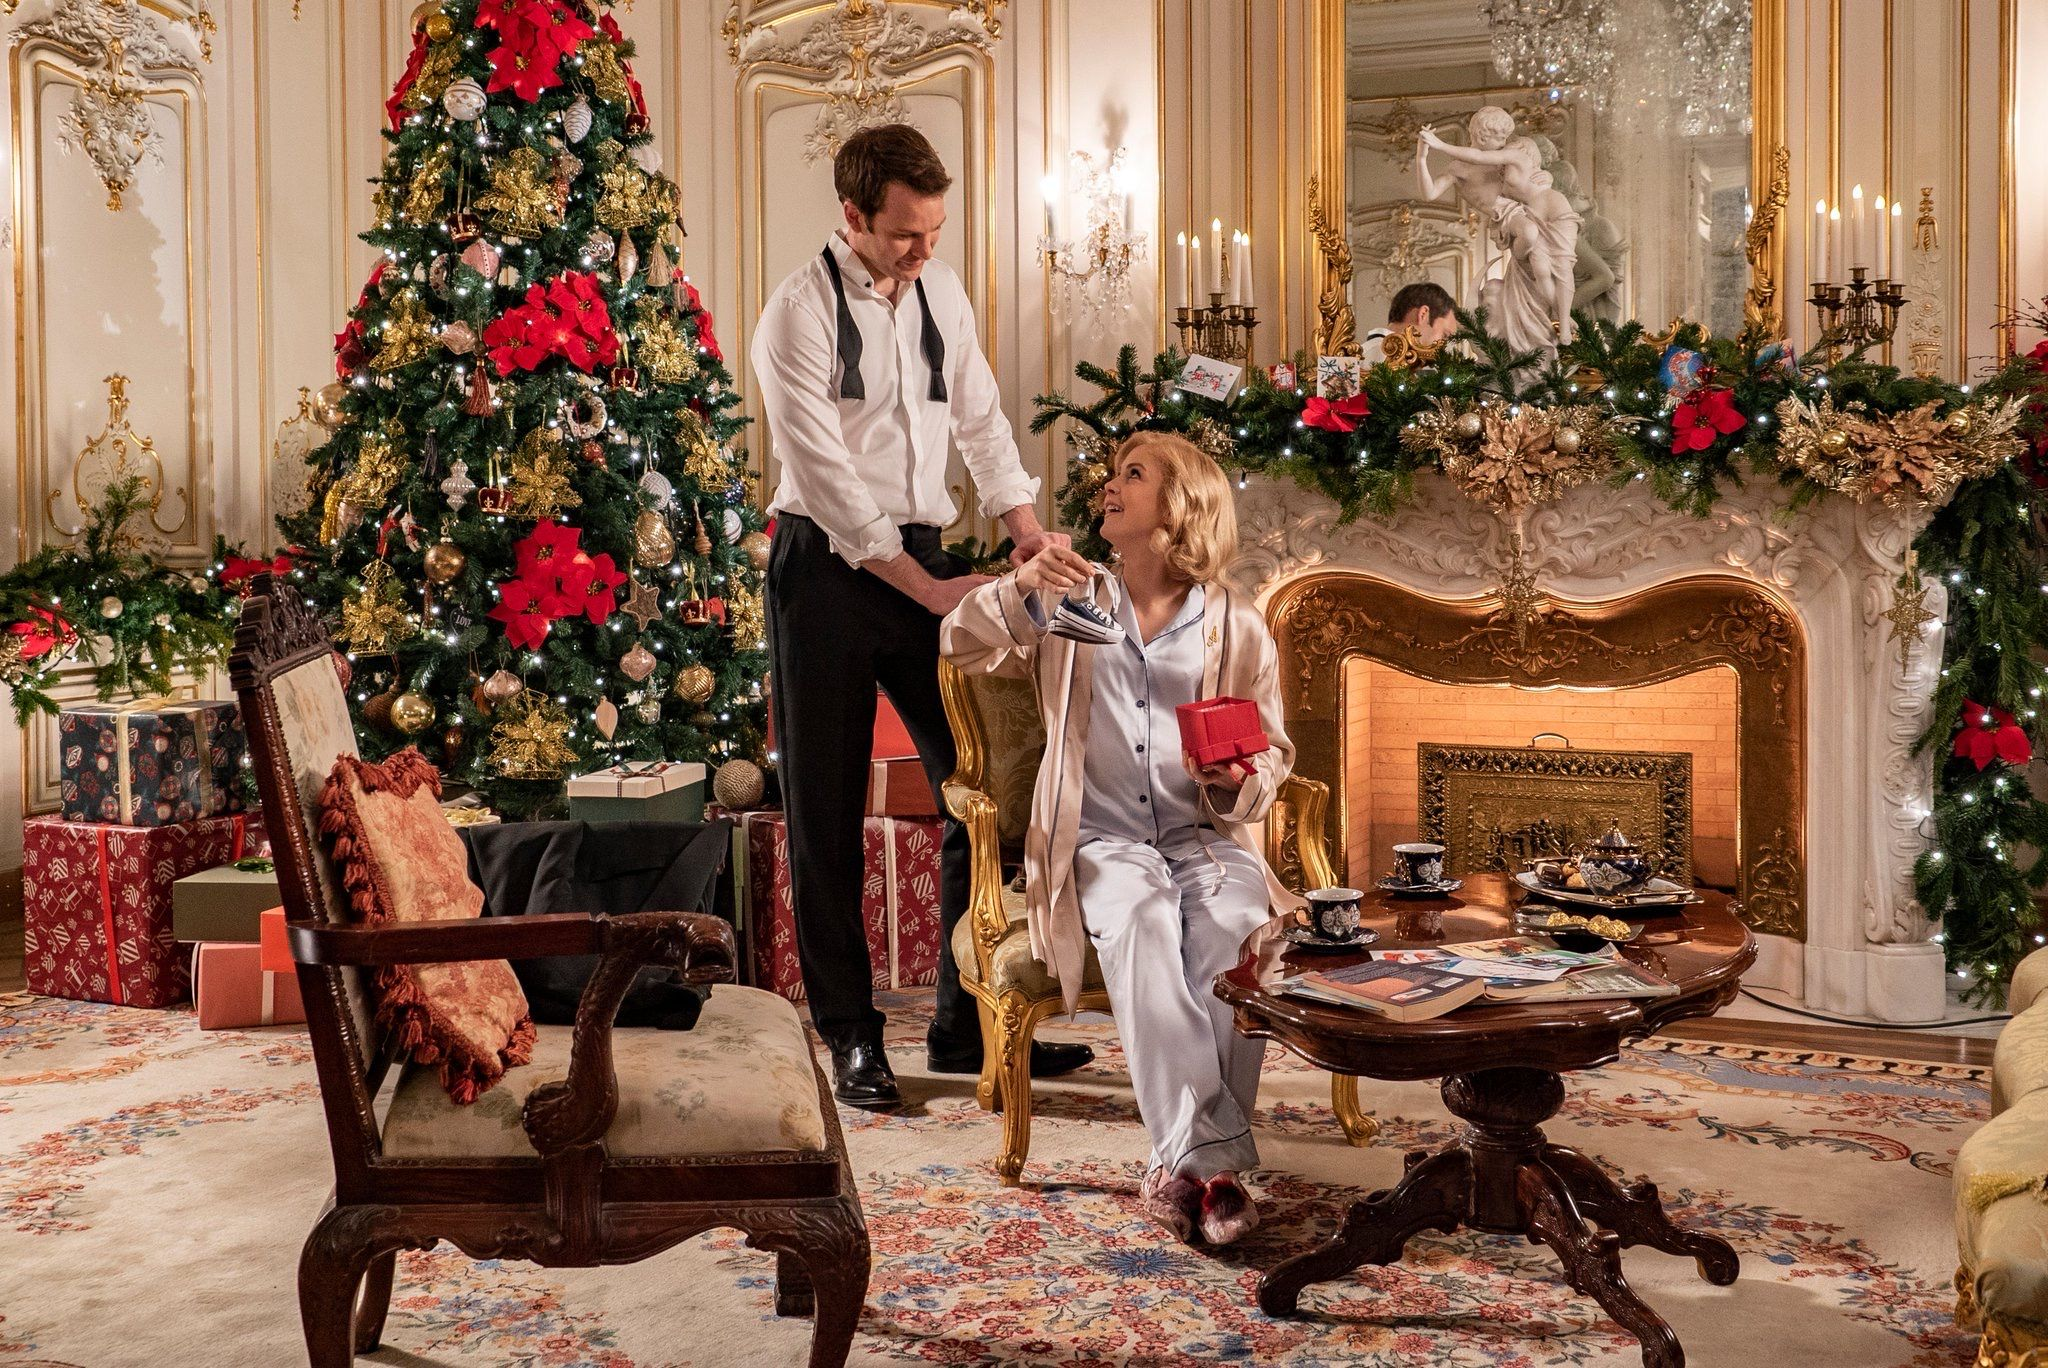 Netflix has released a first look at its new Christmas movies, including A Christmas Prince 3